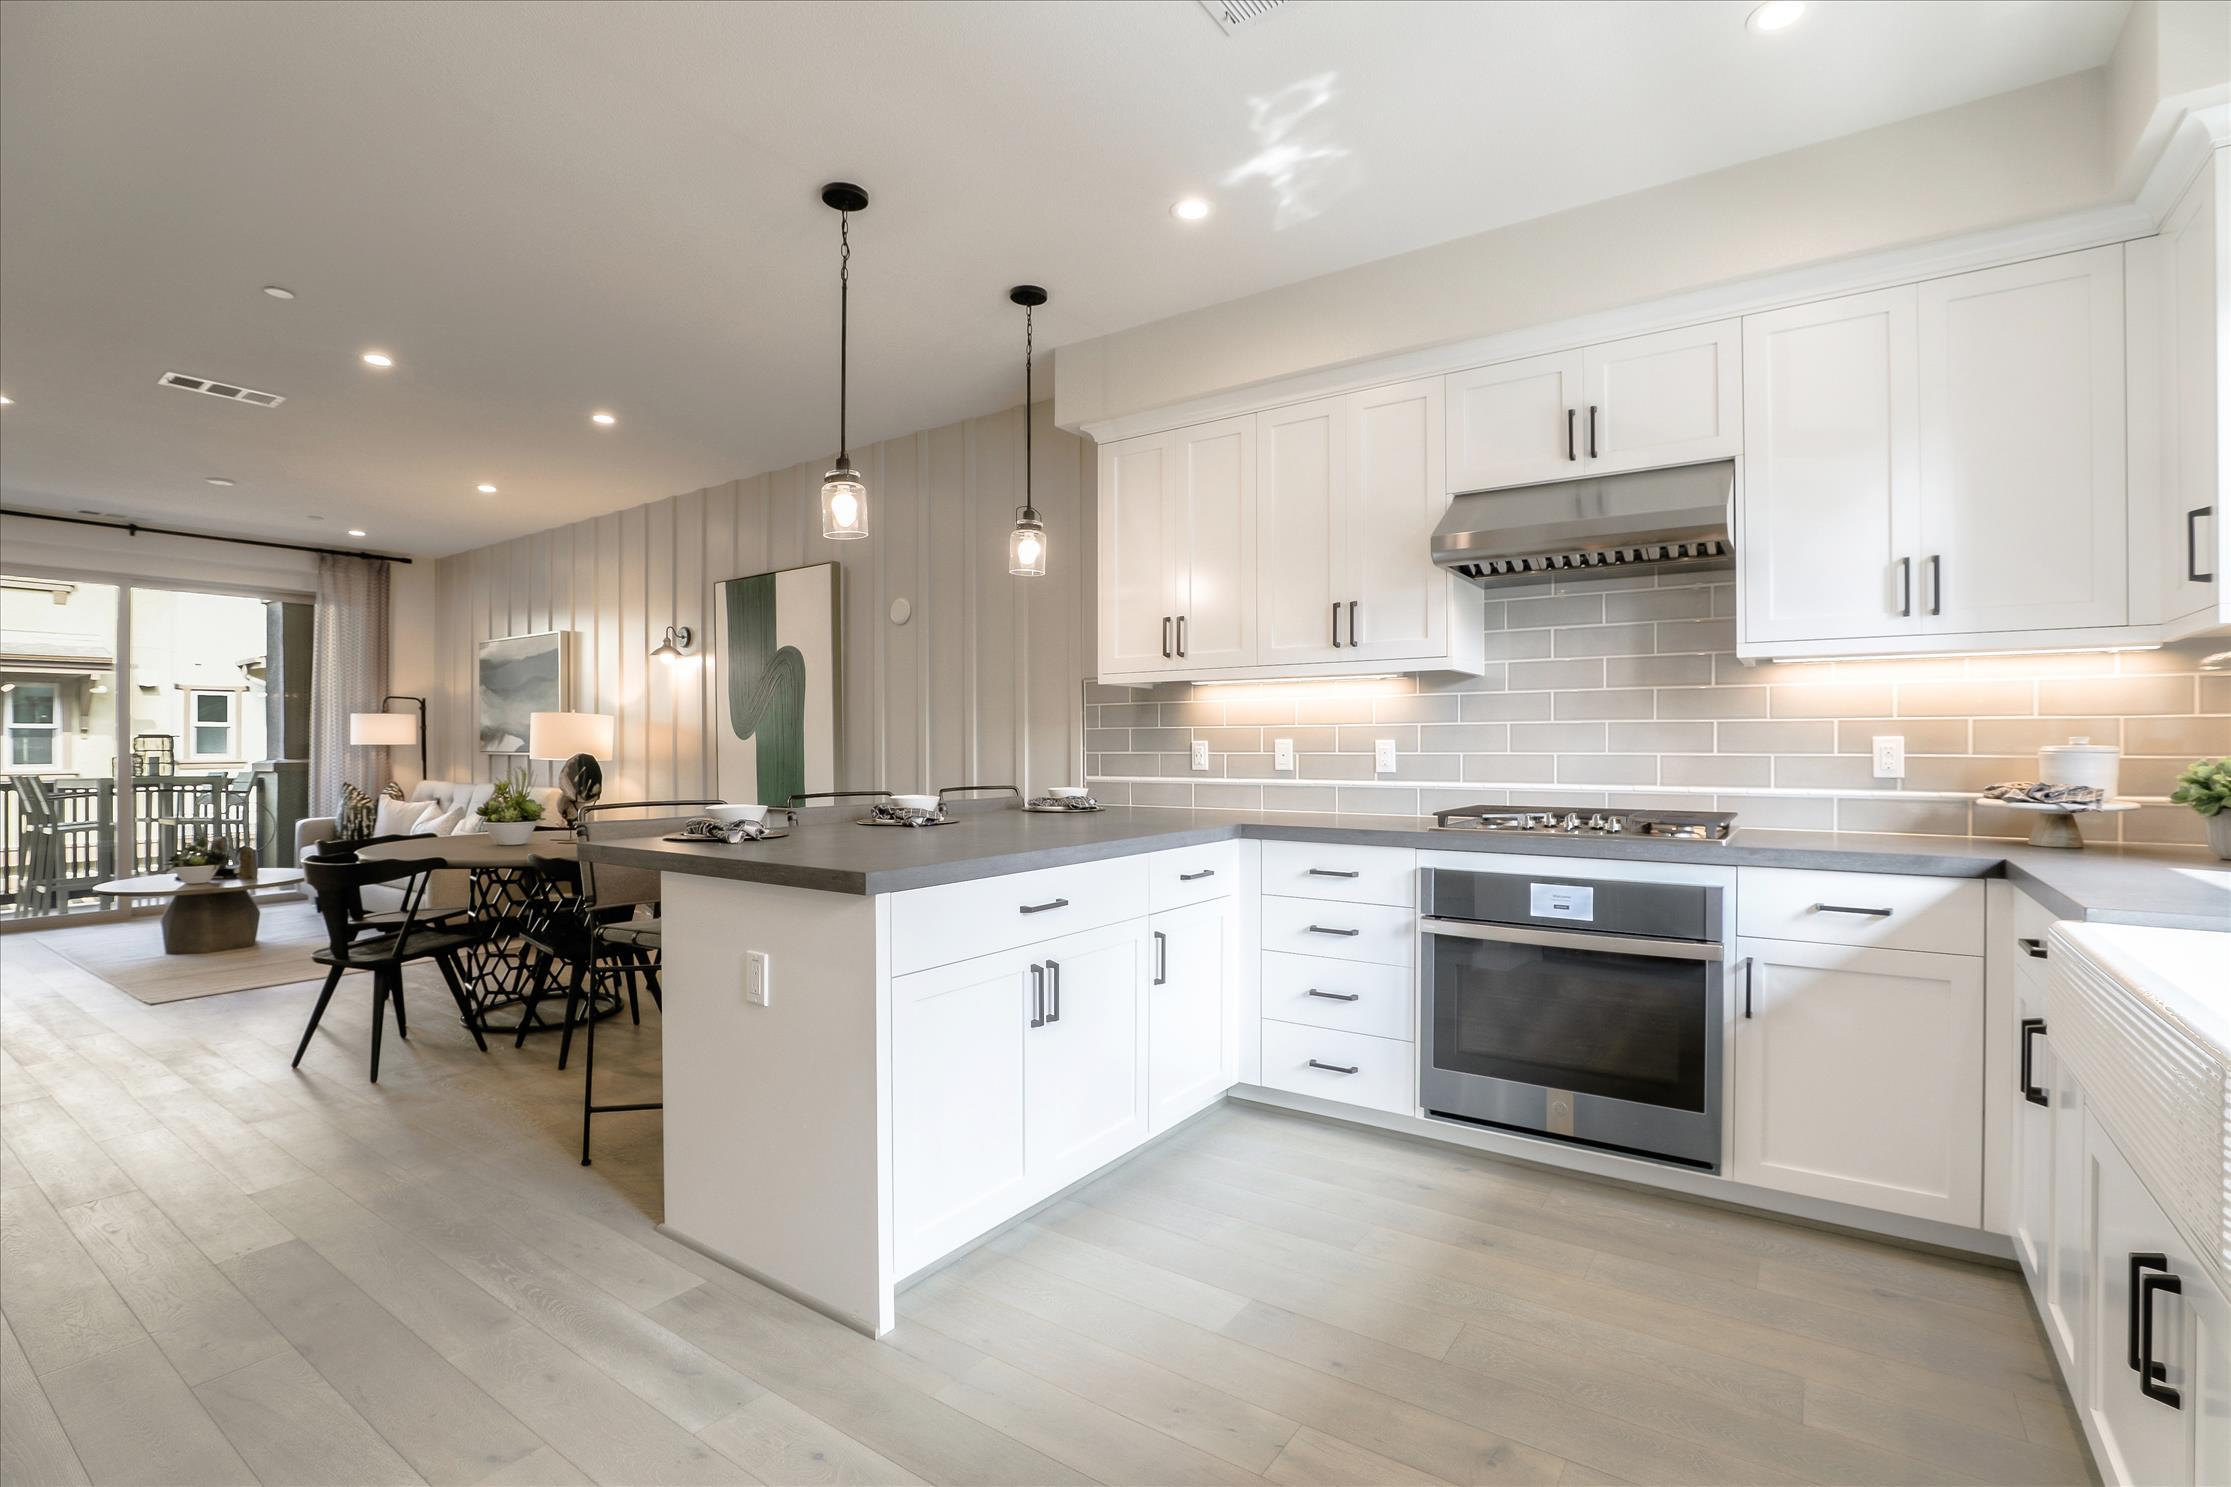 Kitchen featured in the Marquetta Residence 2 By SummerHill Homes in San Jose, CA